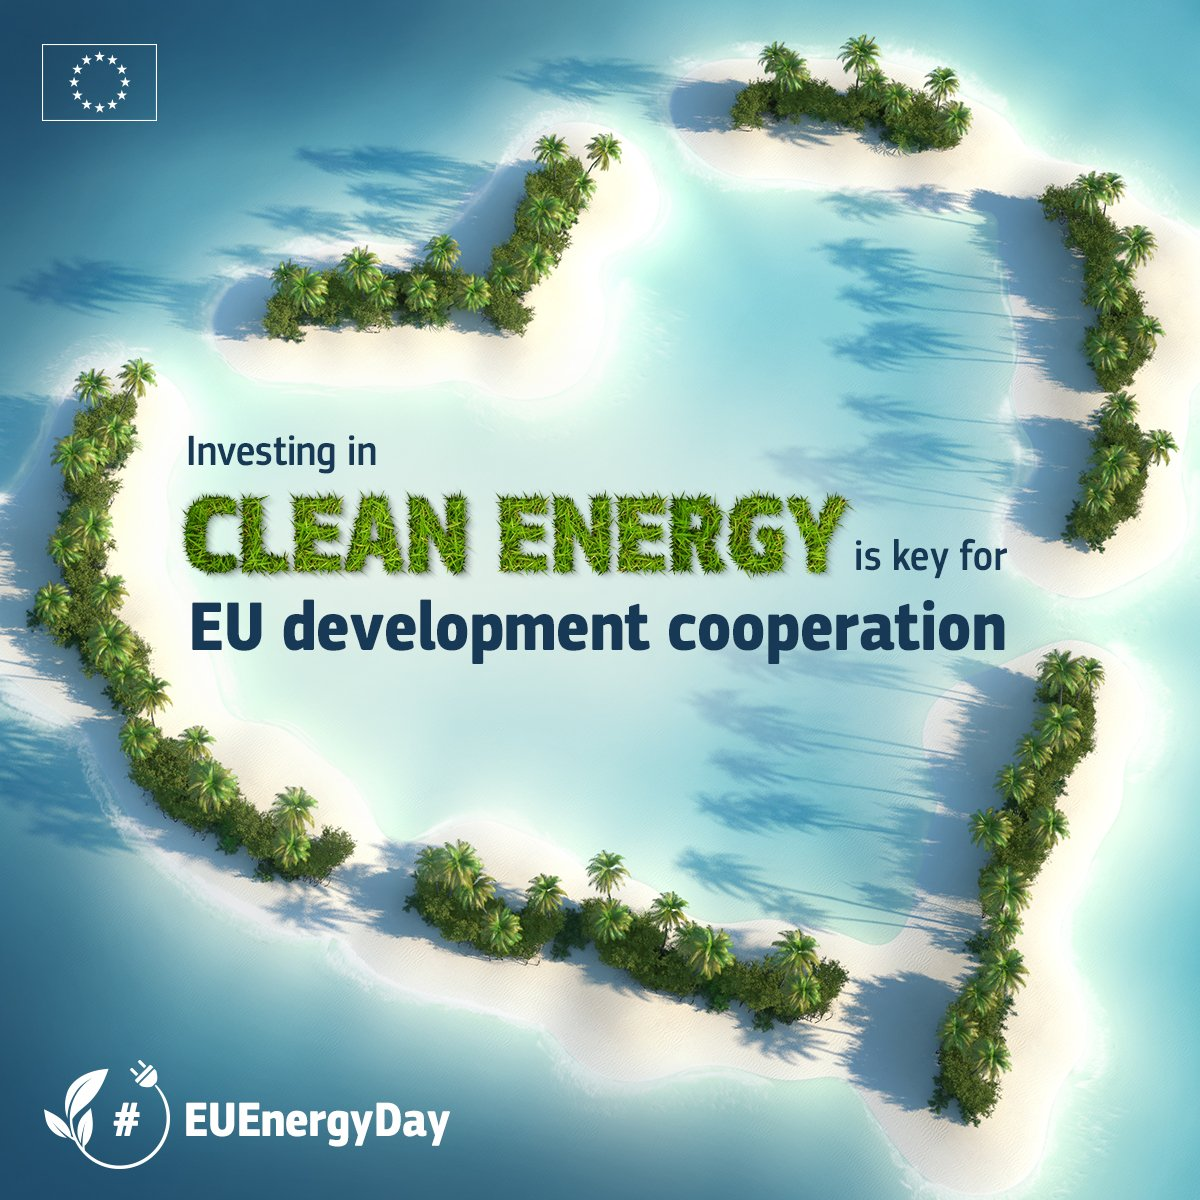 test Twitter Media - It's #EUEnergyDay! Wondering how clean energy tackles climate change while boosting sustainable economic growth? Follow LIVE today at #COP23➡ https://t.co/4E8oi5Q65S https://t.co/cggBCJ6yWw